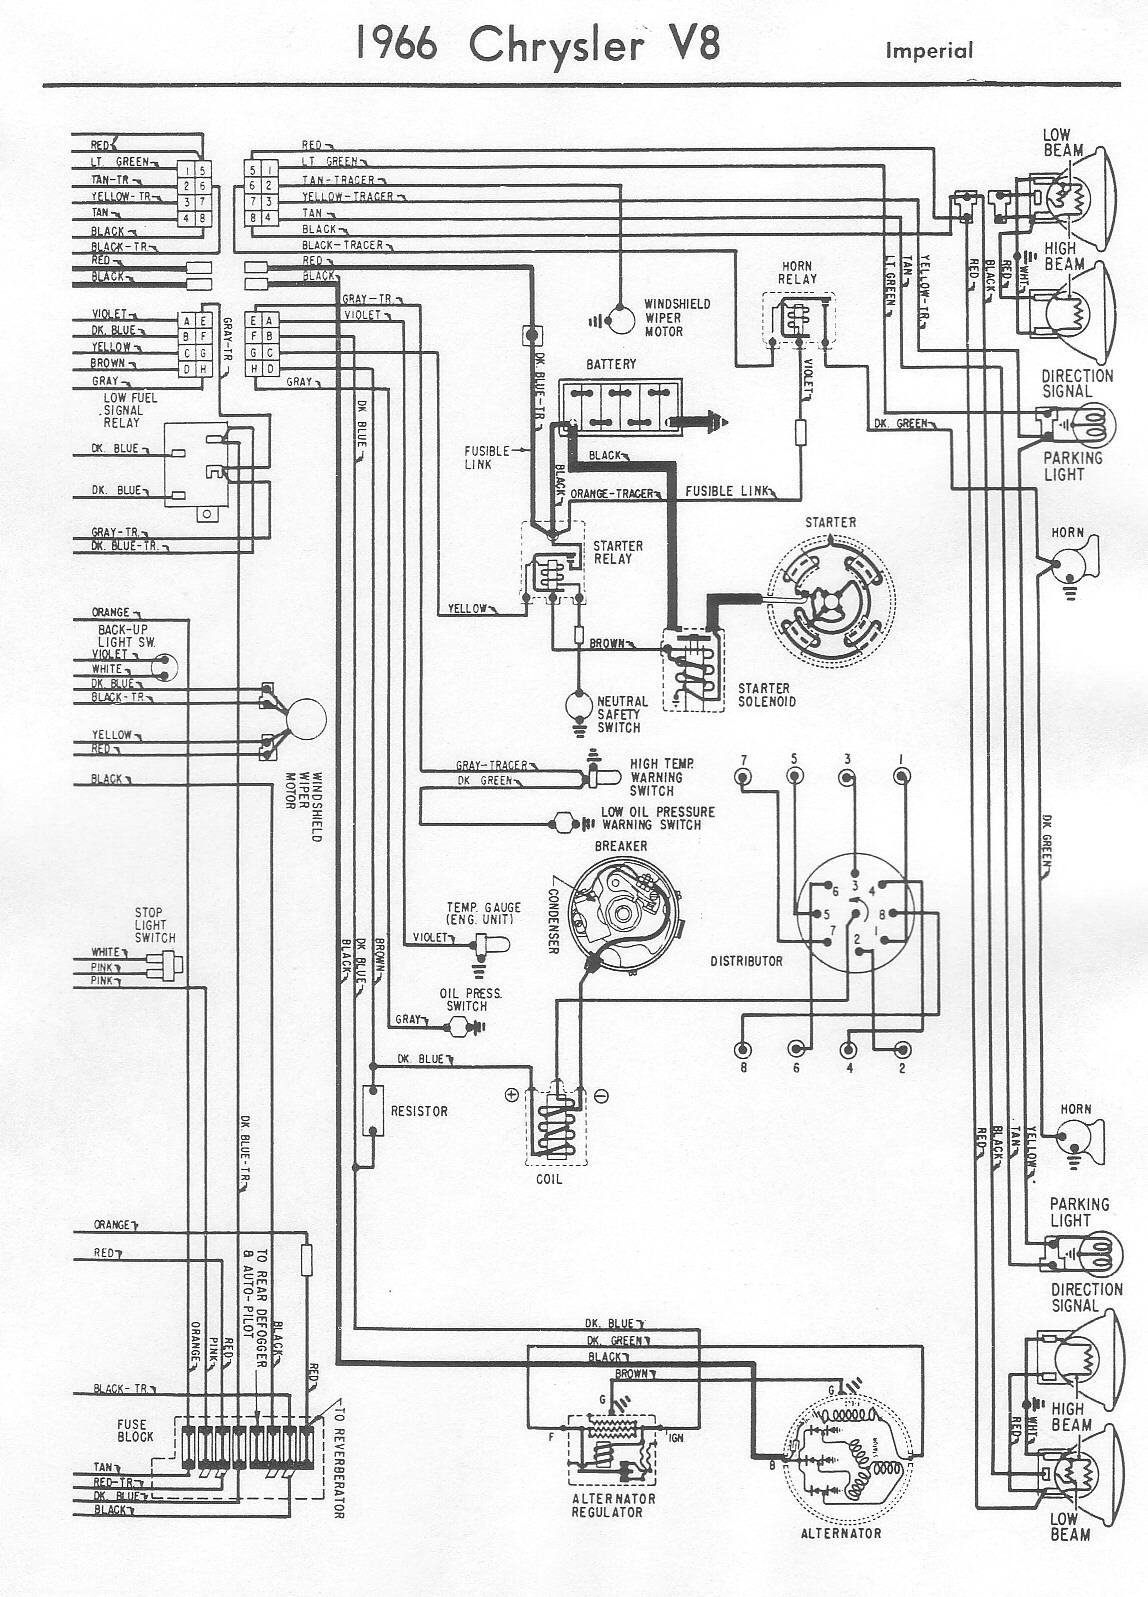 1966+Chrysler+Imperial+Wiring+Diagram october 2014 ~ circuit diagram for learning alpine mrp m500 wiring diagram at aneh.co